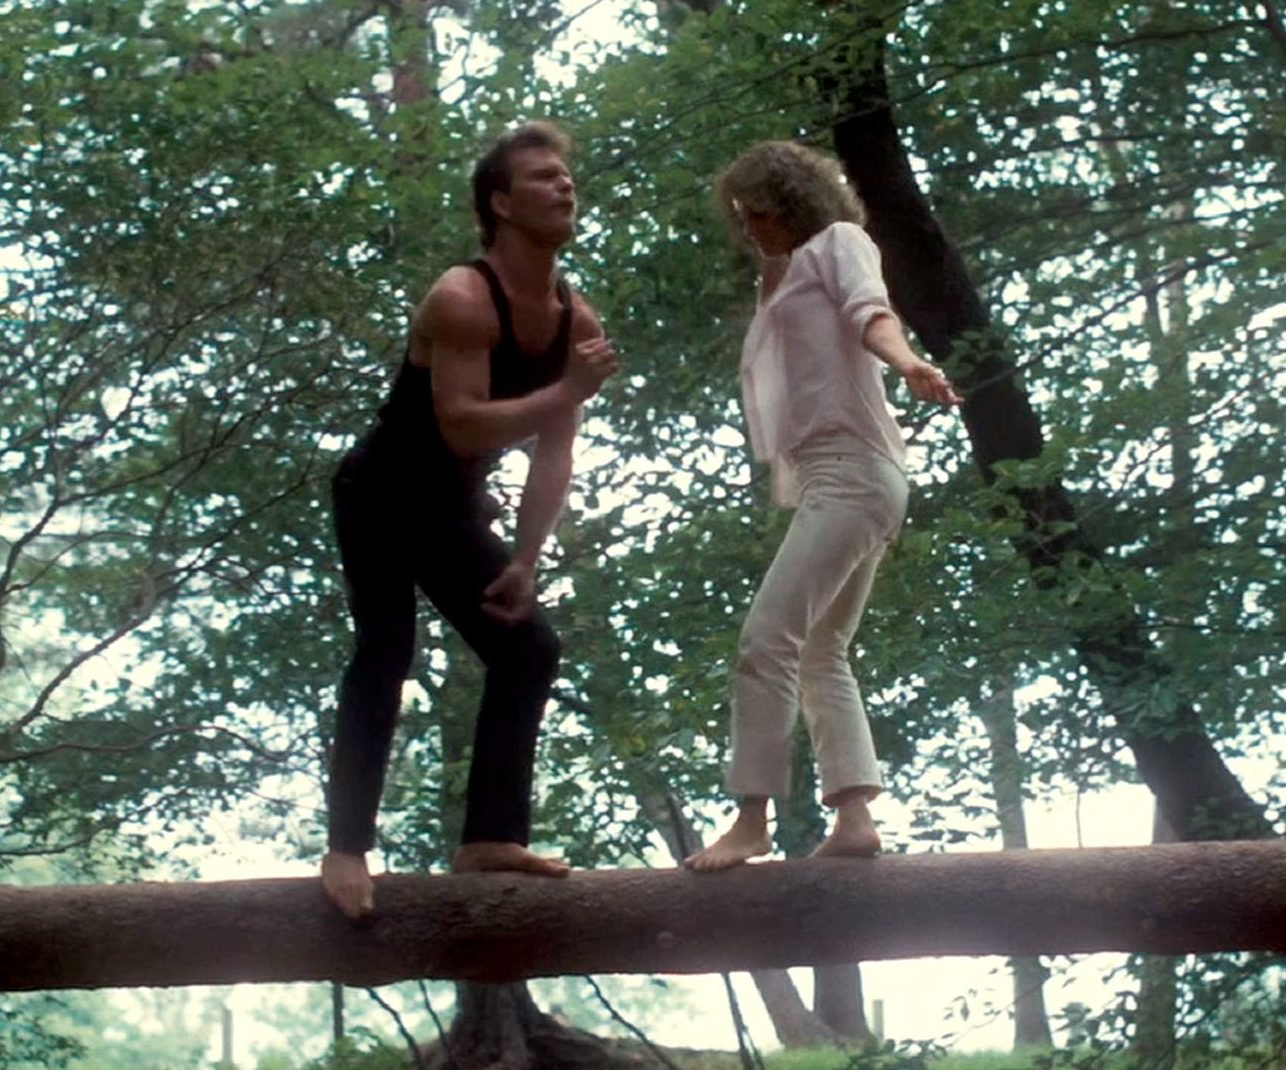 dirty dancing log dance johnny baby e1617269932235 30 Things You Probably Didn't Know About Dirty Dancing